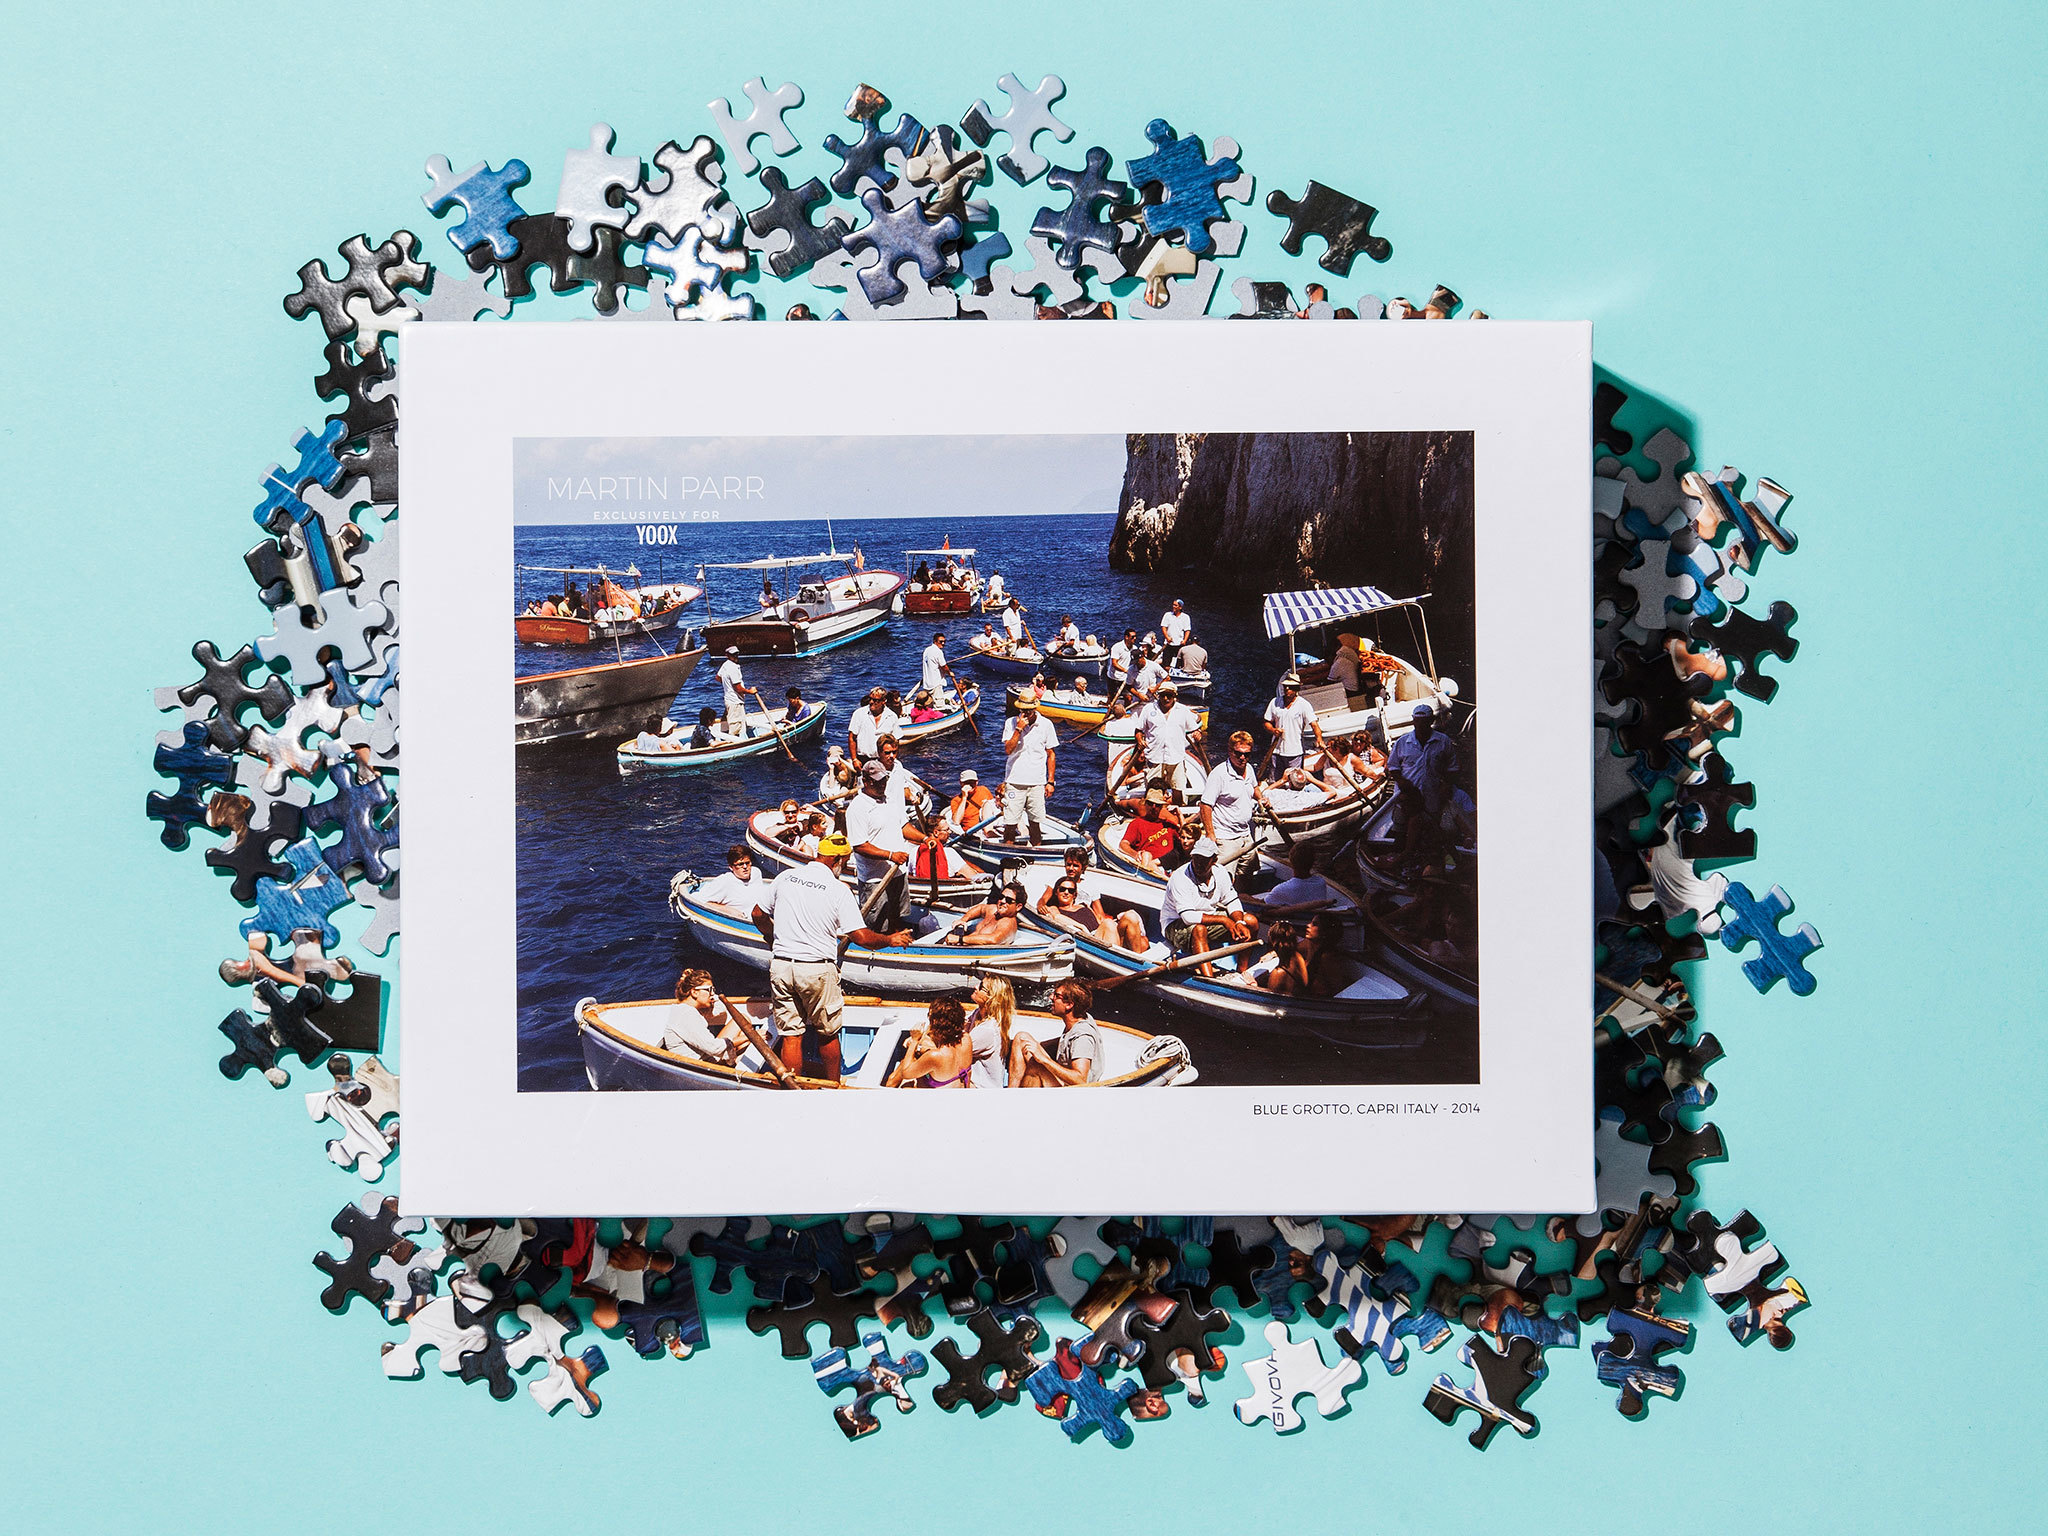 Christmas gift guide: home - Jigsaw puzzle by Martin Parr